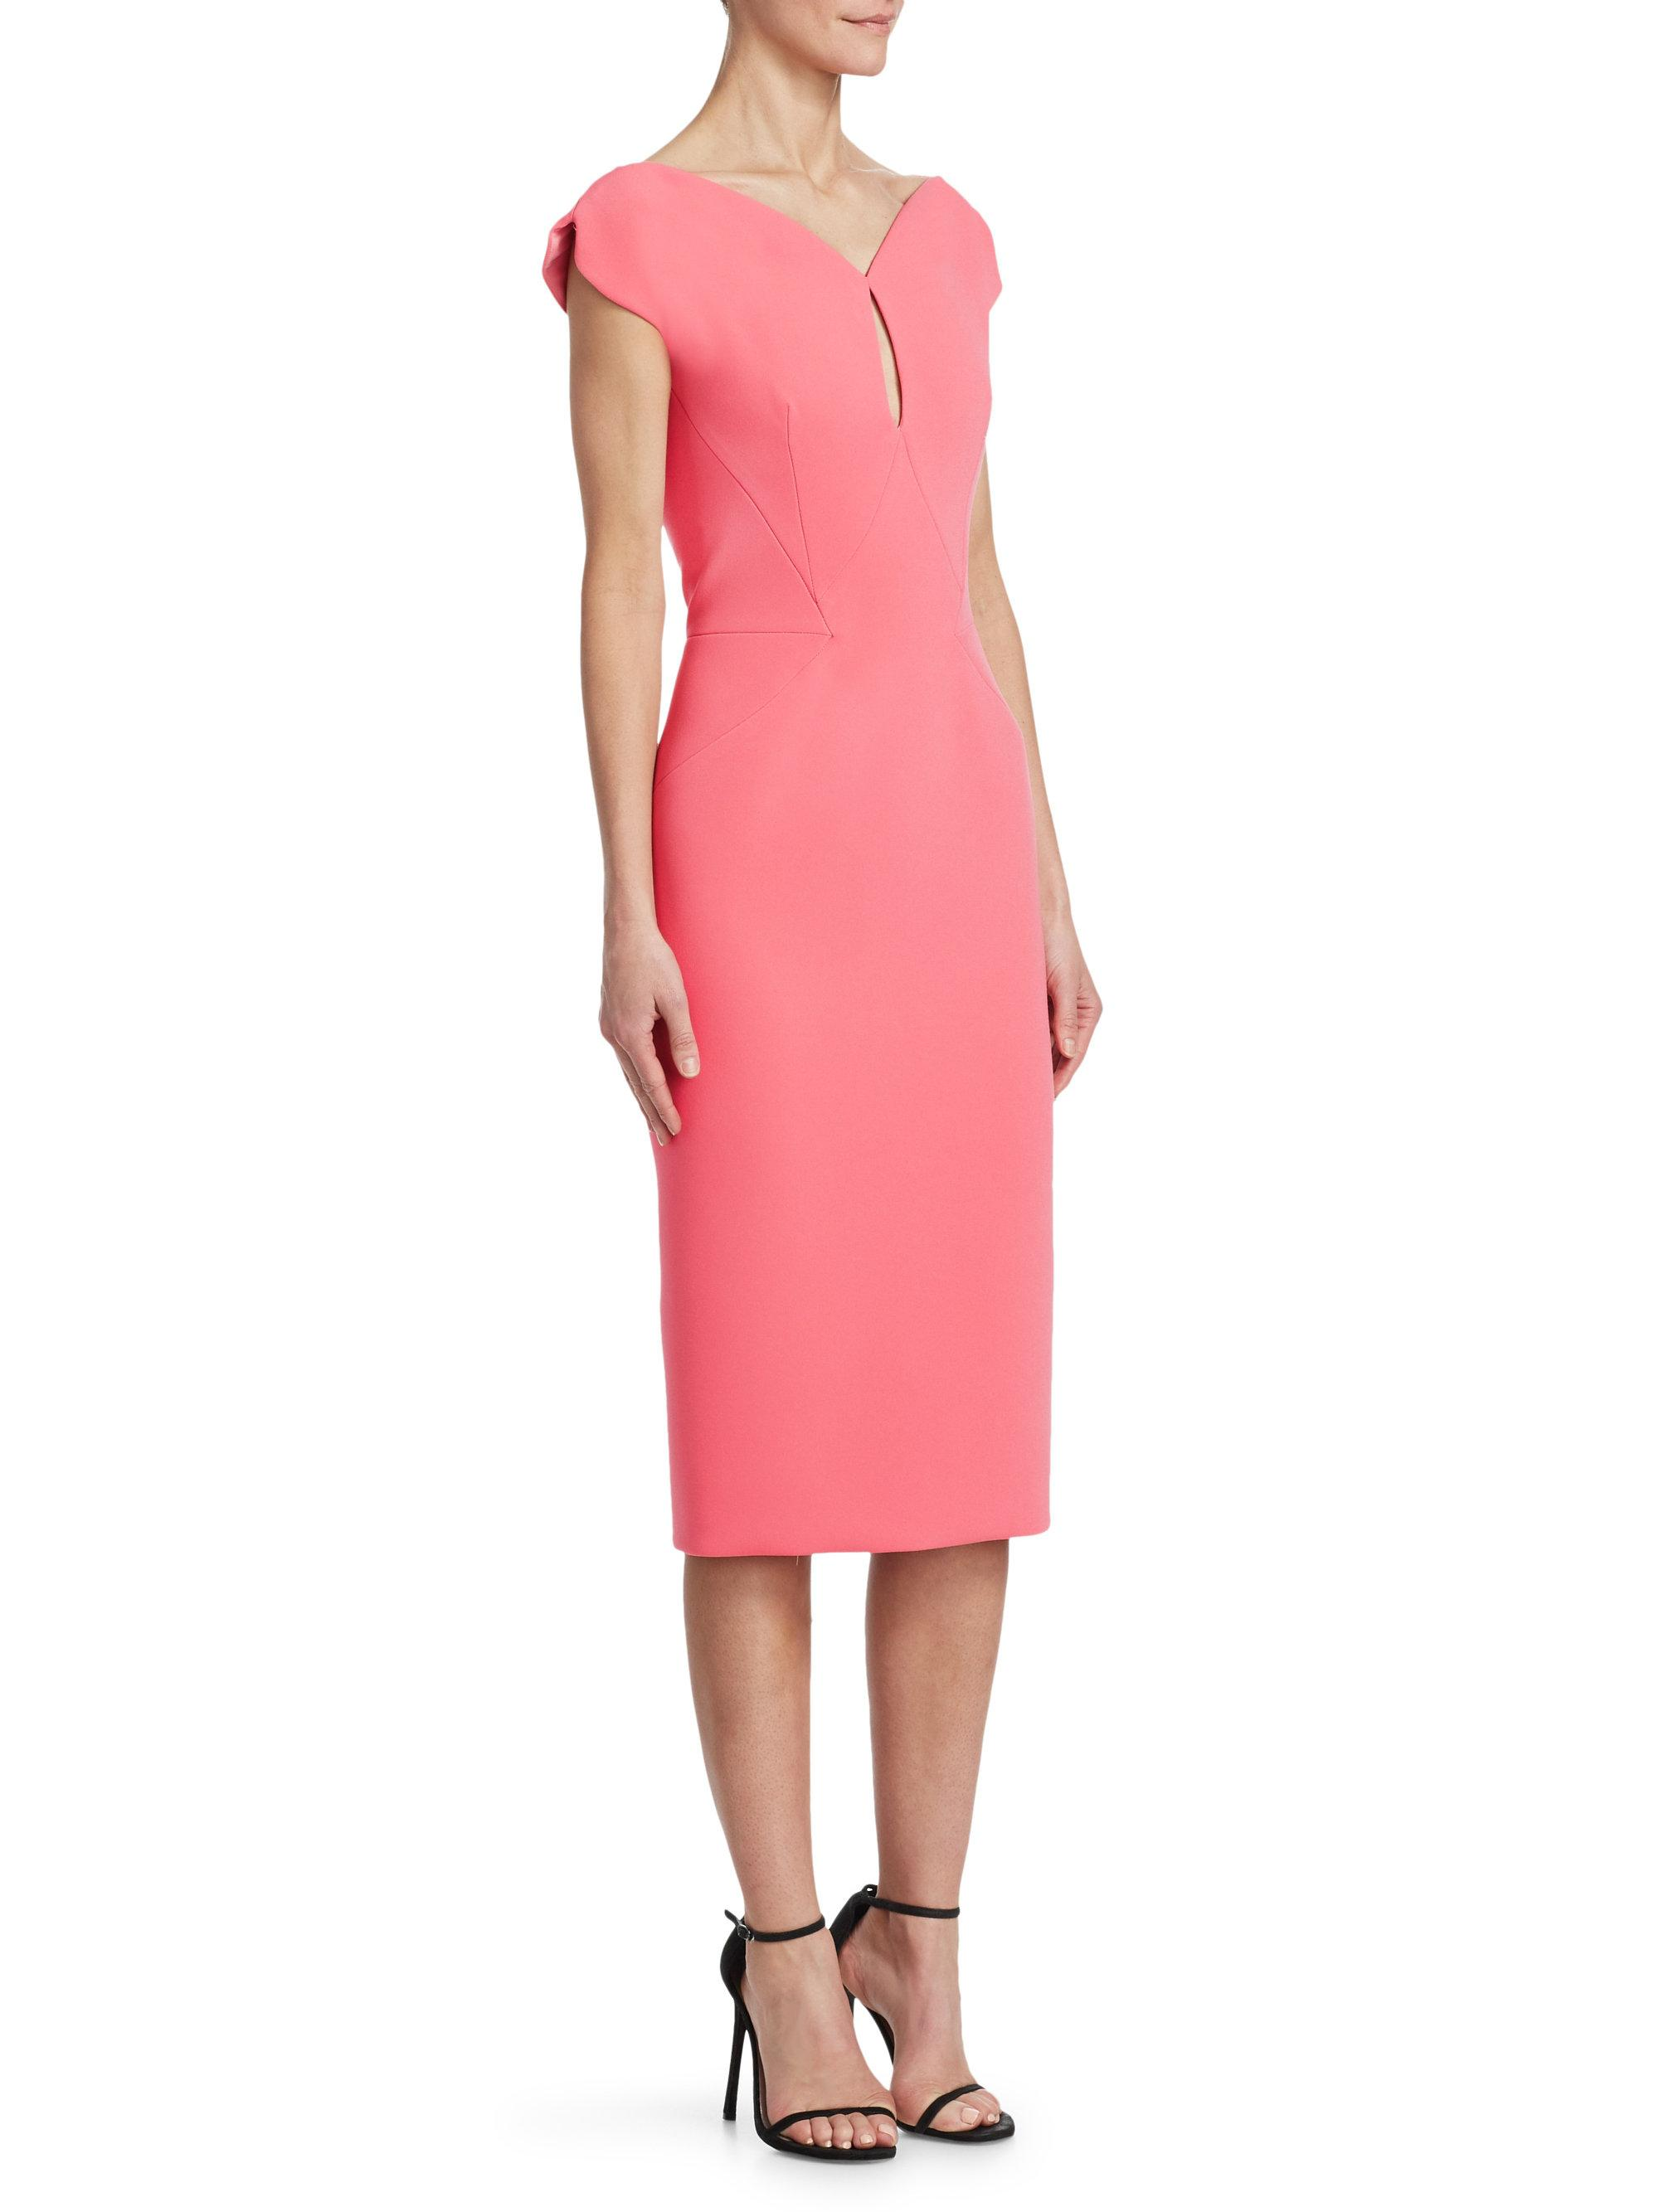 0bc5f6191e Zac Posen Bonded Crepe Sheath Cocktail Dress in Pink - Lyst